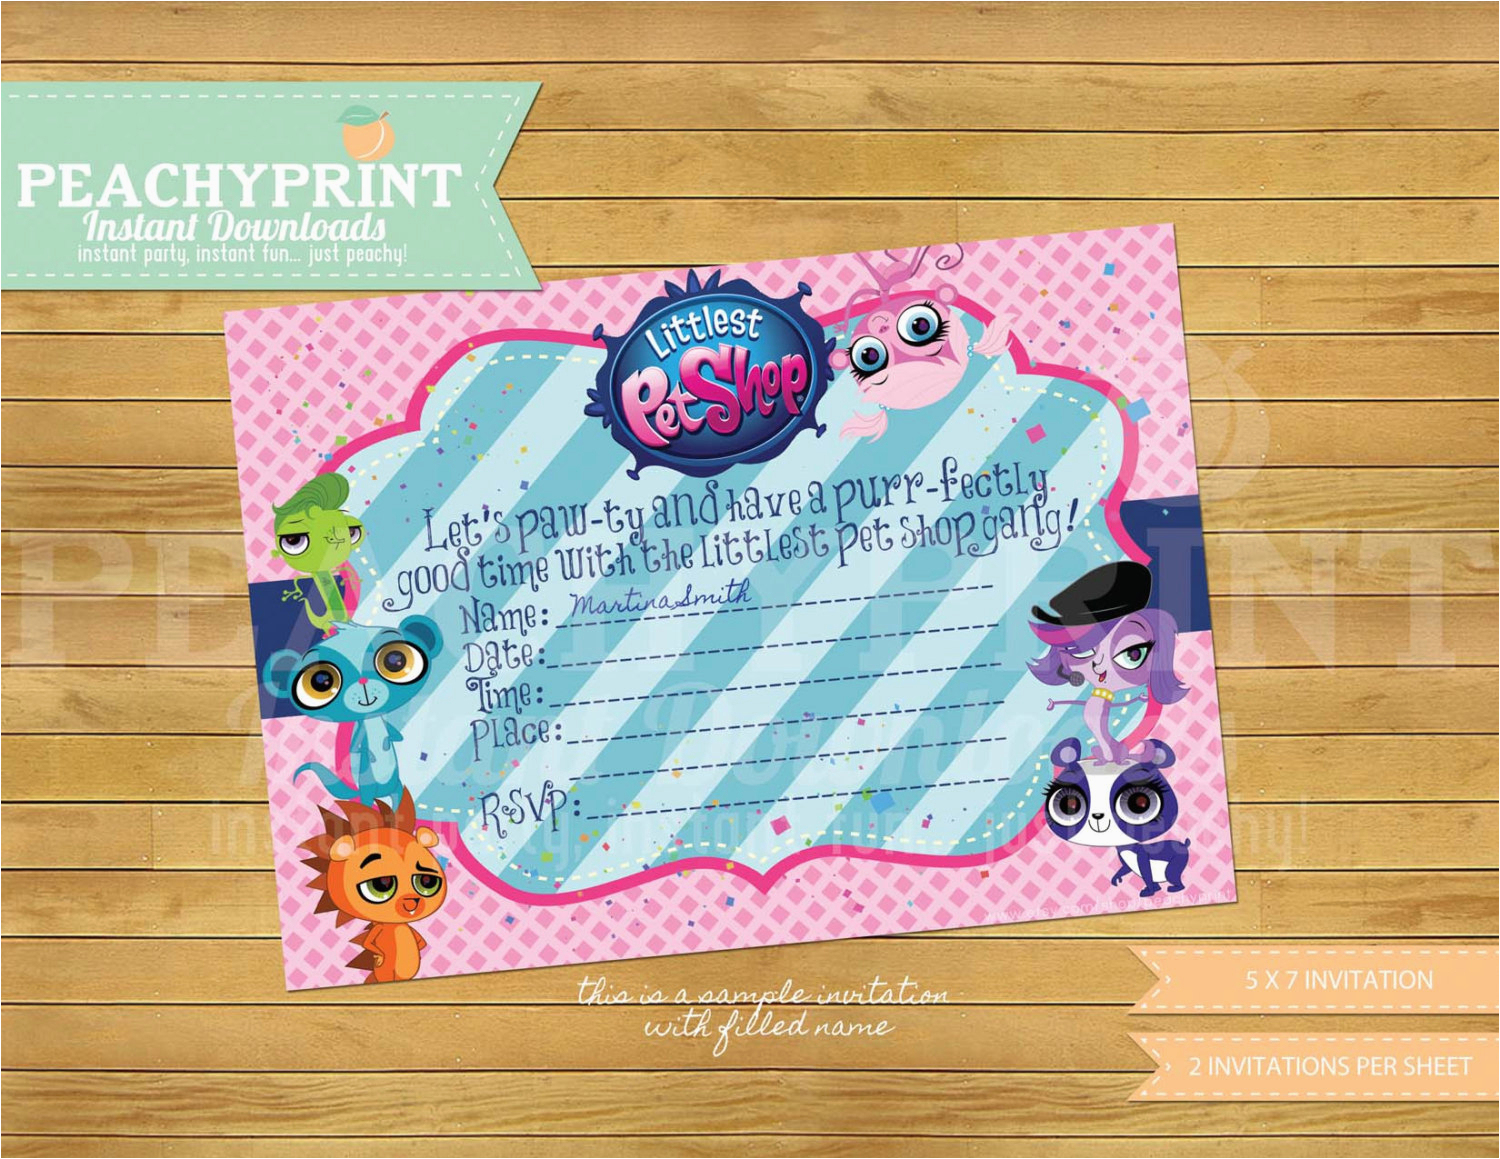 Littlest Pet Shop Birthday Invitations | Birthdaybuzz - Littlest Pet Shop Invitations Printable Free